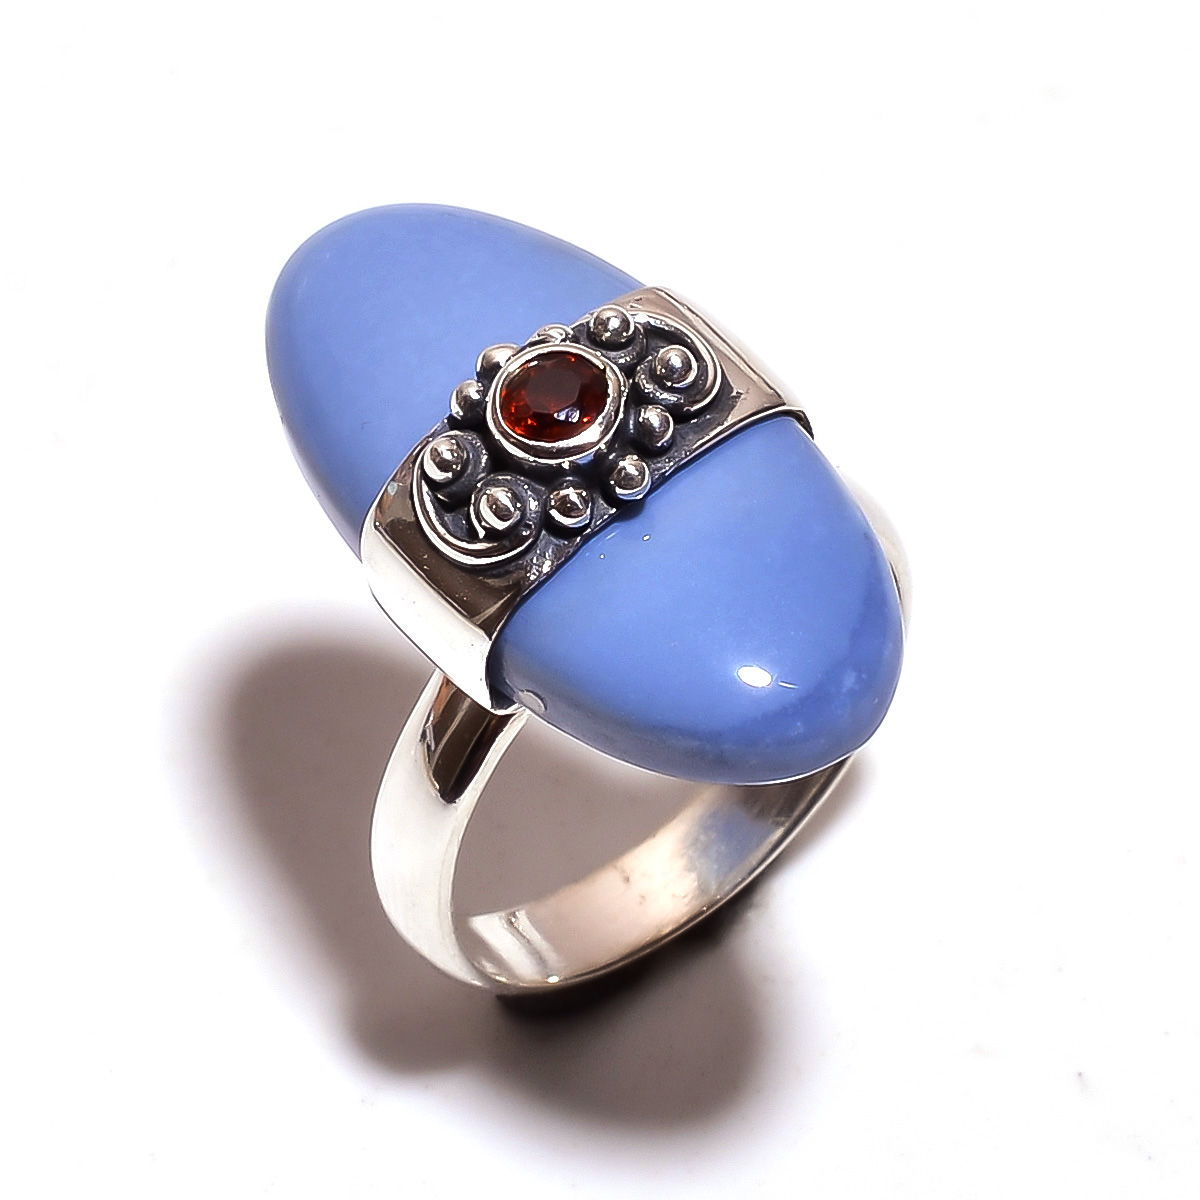 Owyhee Blue Opal Garnet Gemstone 925 Sterling Silver Ring Size 6